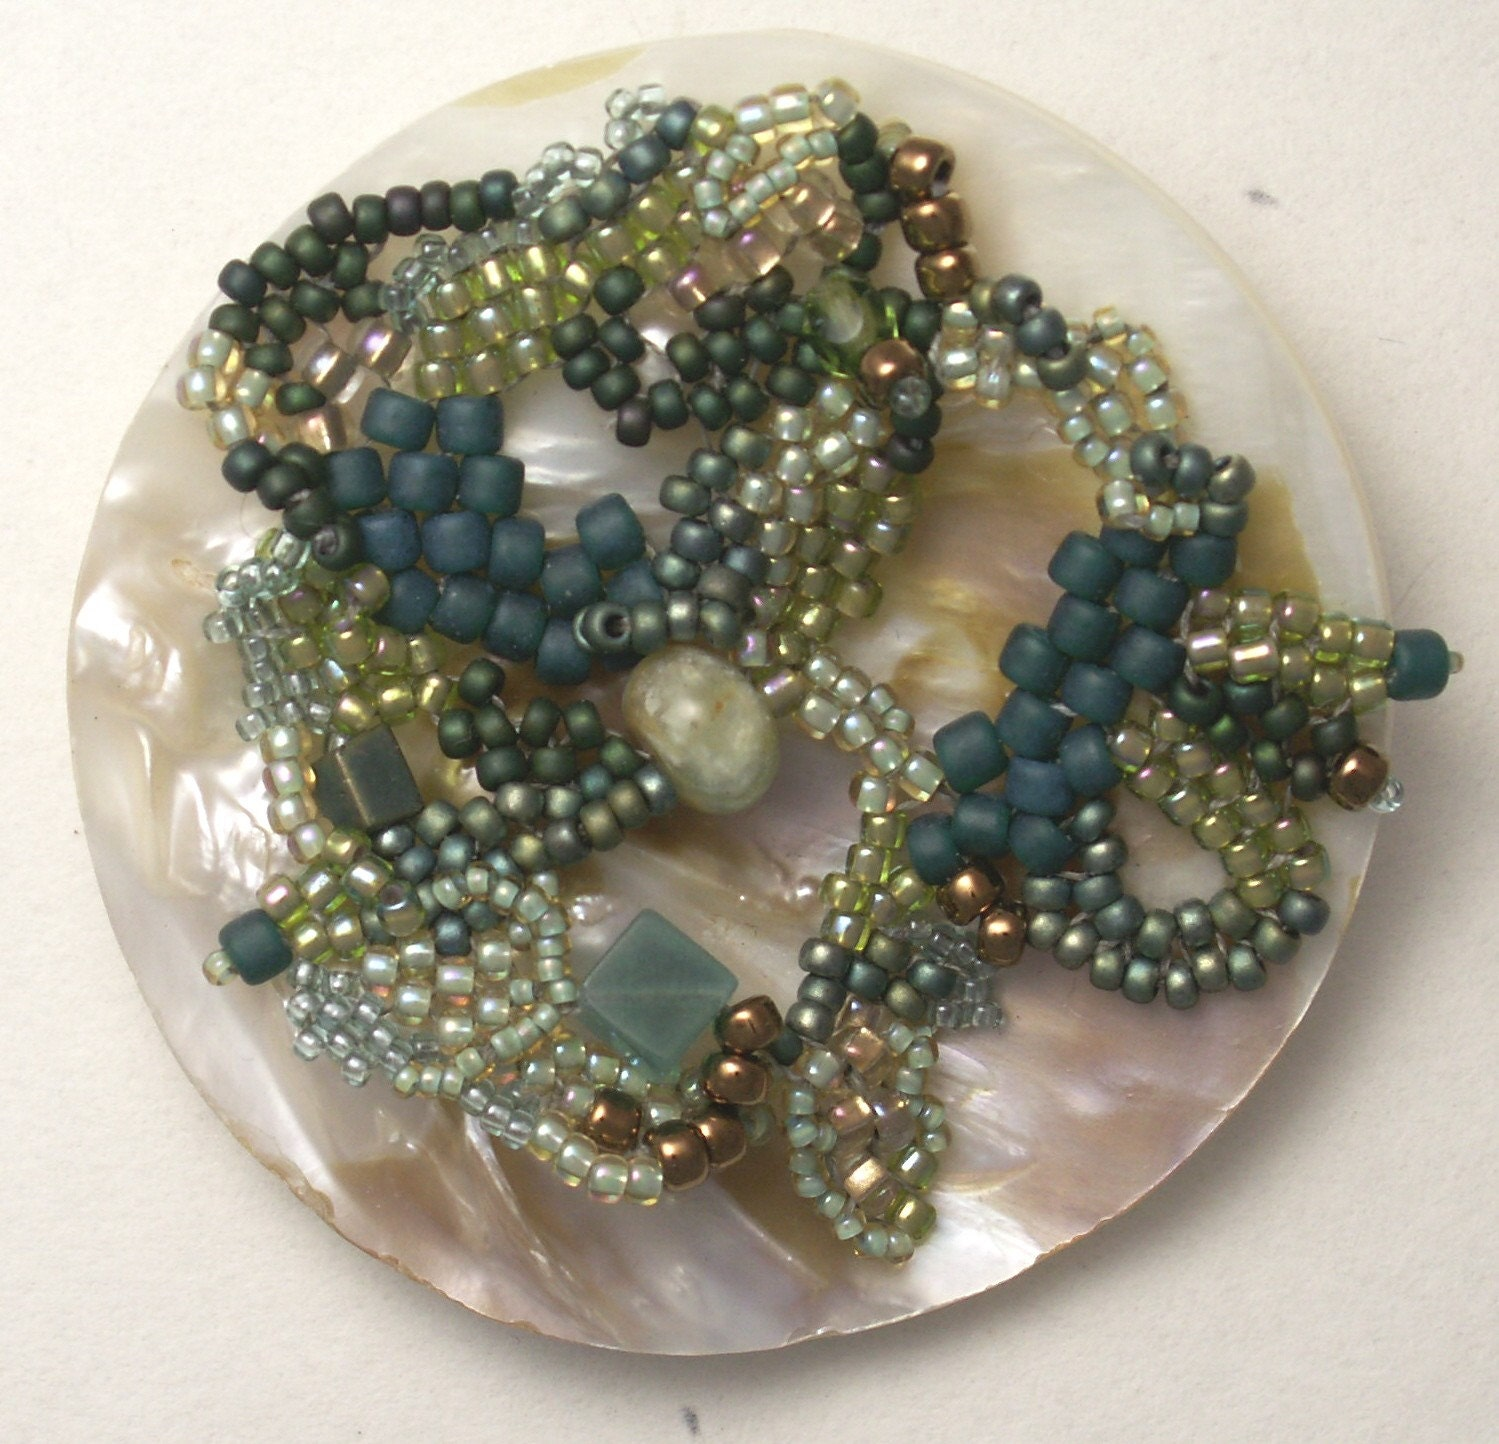 freeform bead weaving mother of pearl seed beads pin brooch pendant